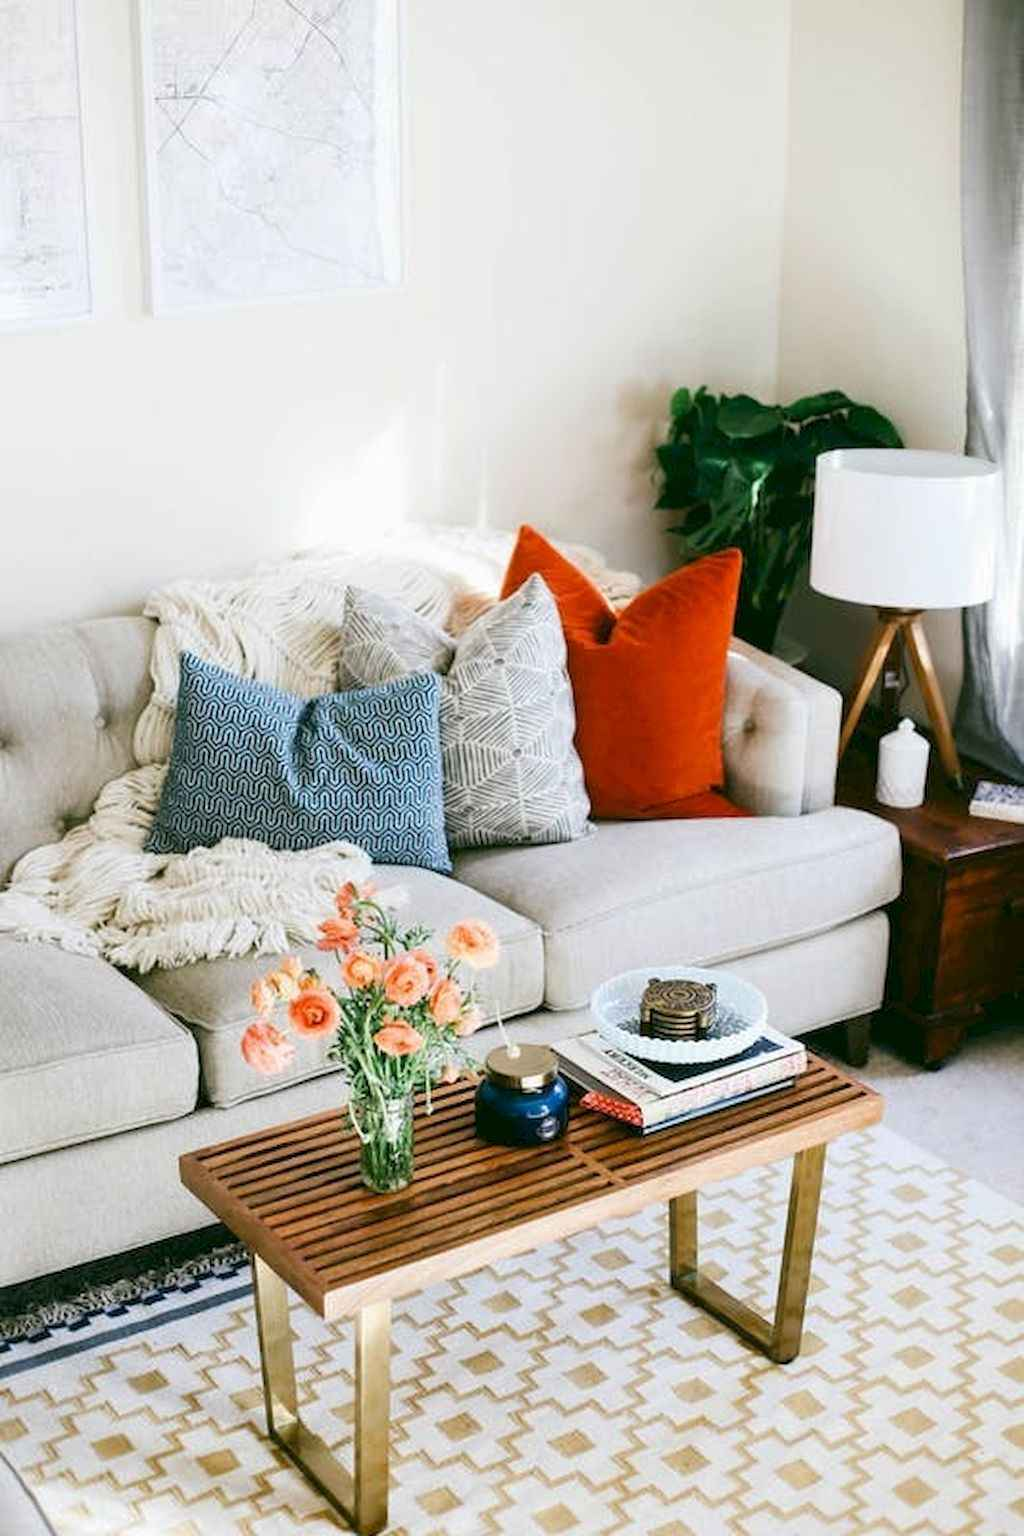 Couples first apartment decorating ideas (115)